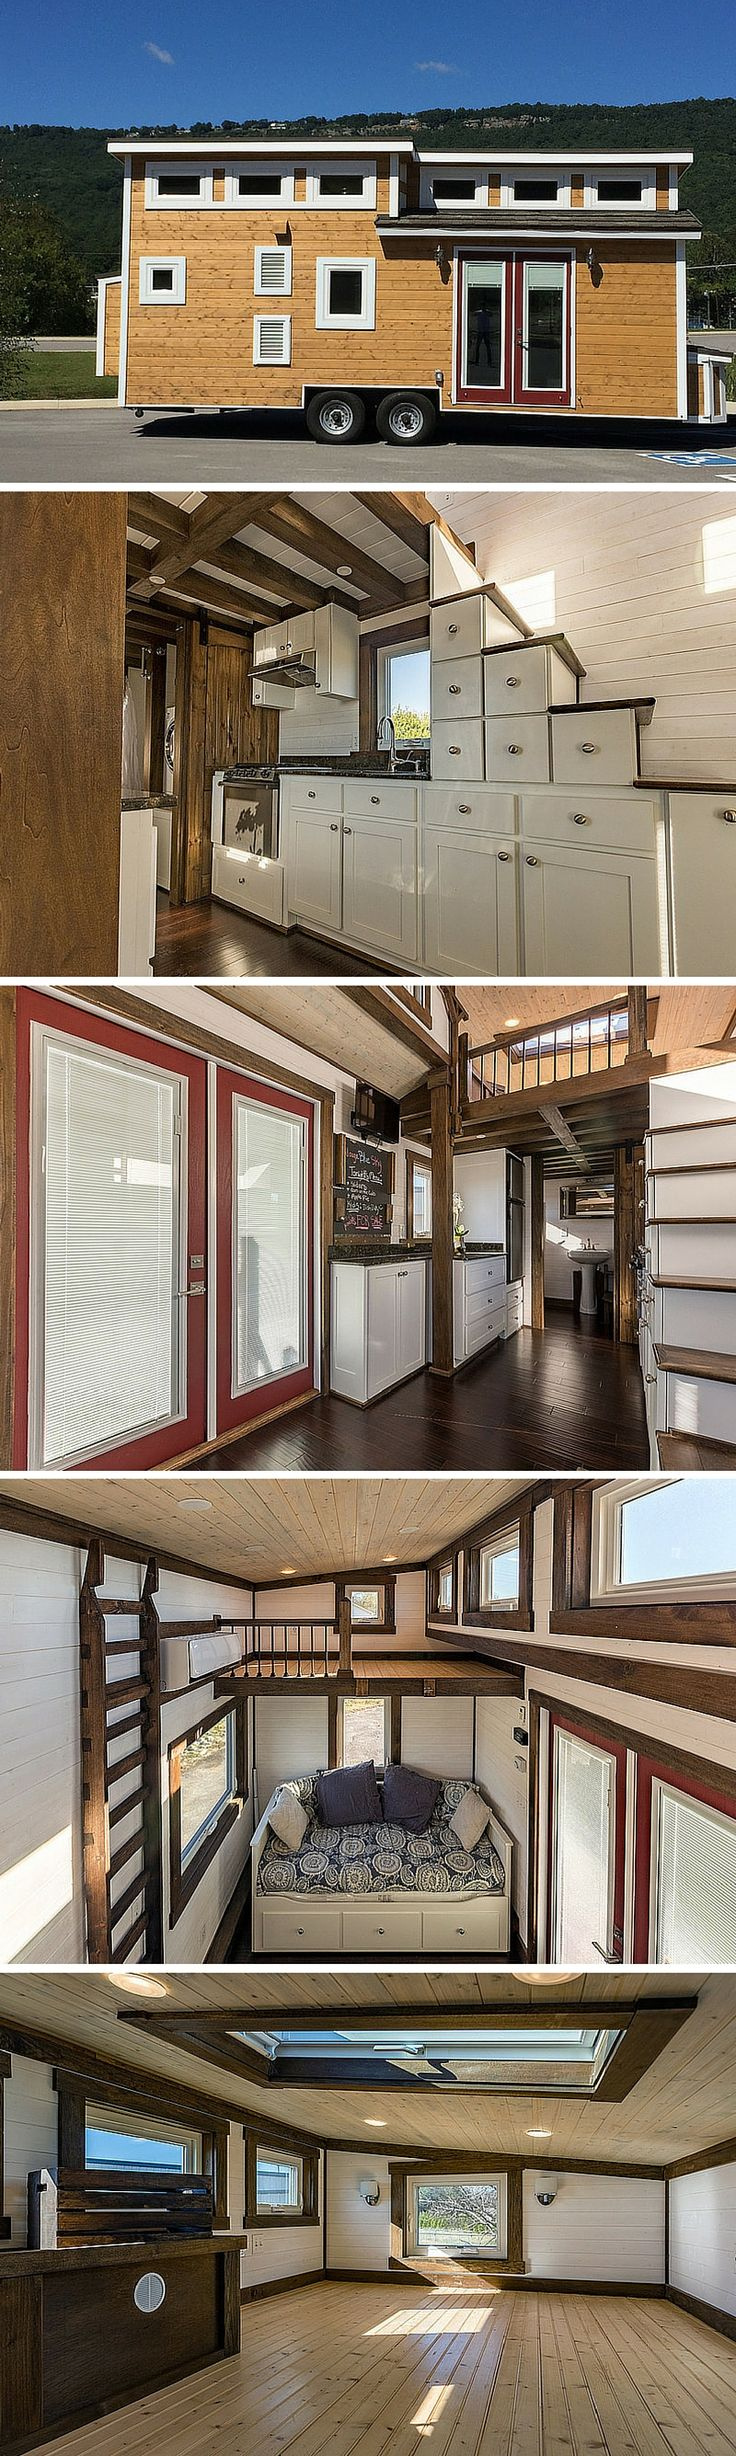 The Nooga Blue Sky tiny house by Tiny House Chattanooga